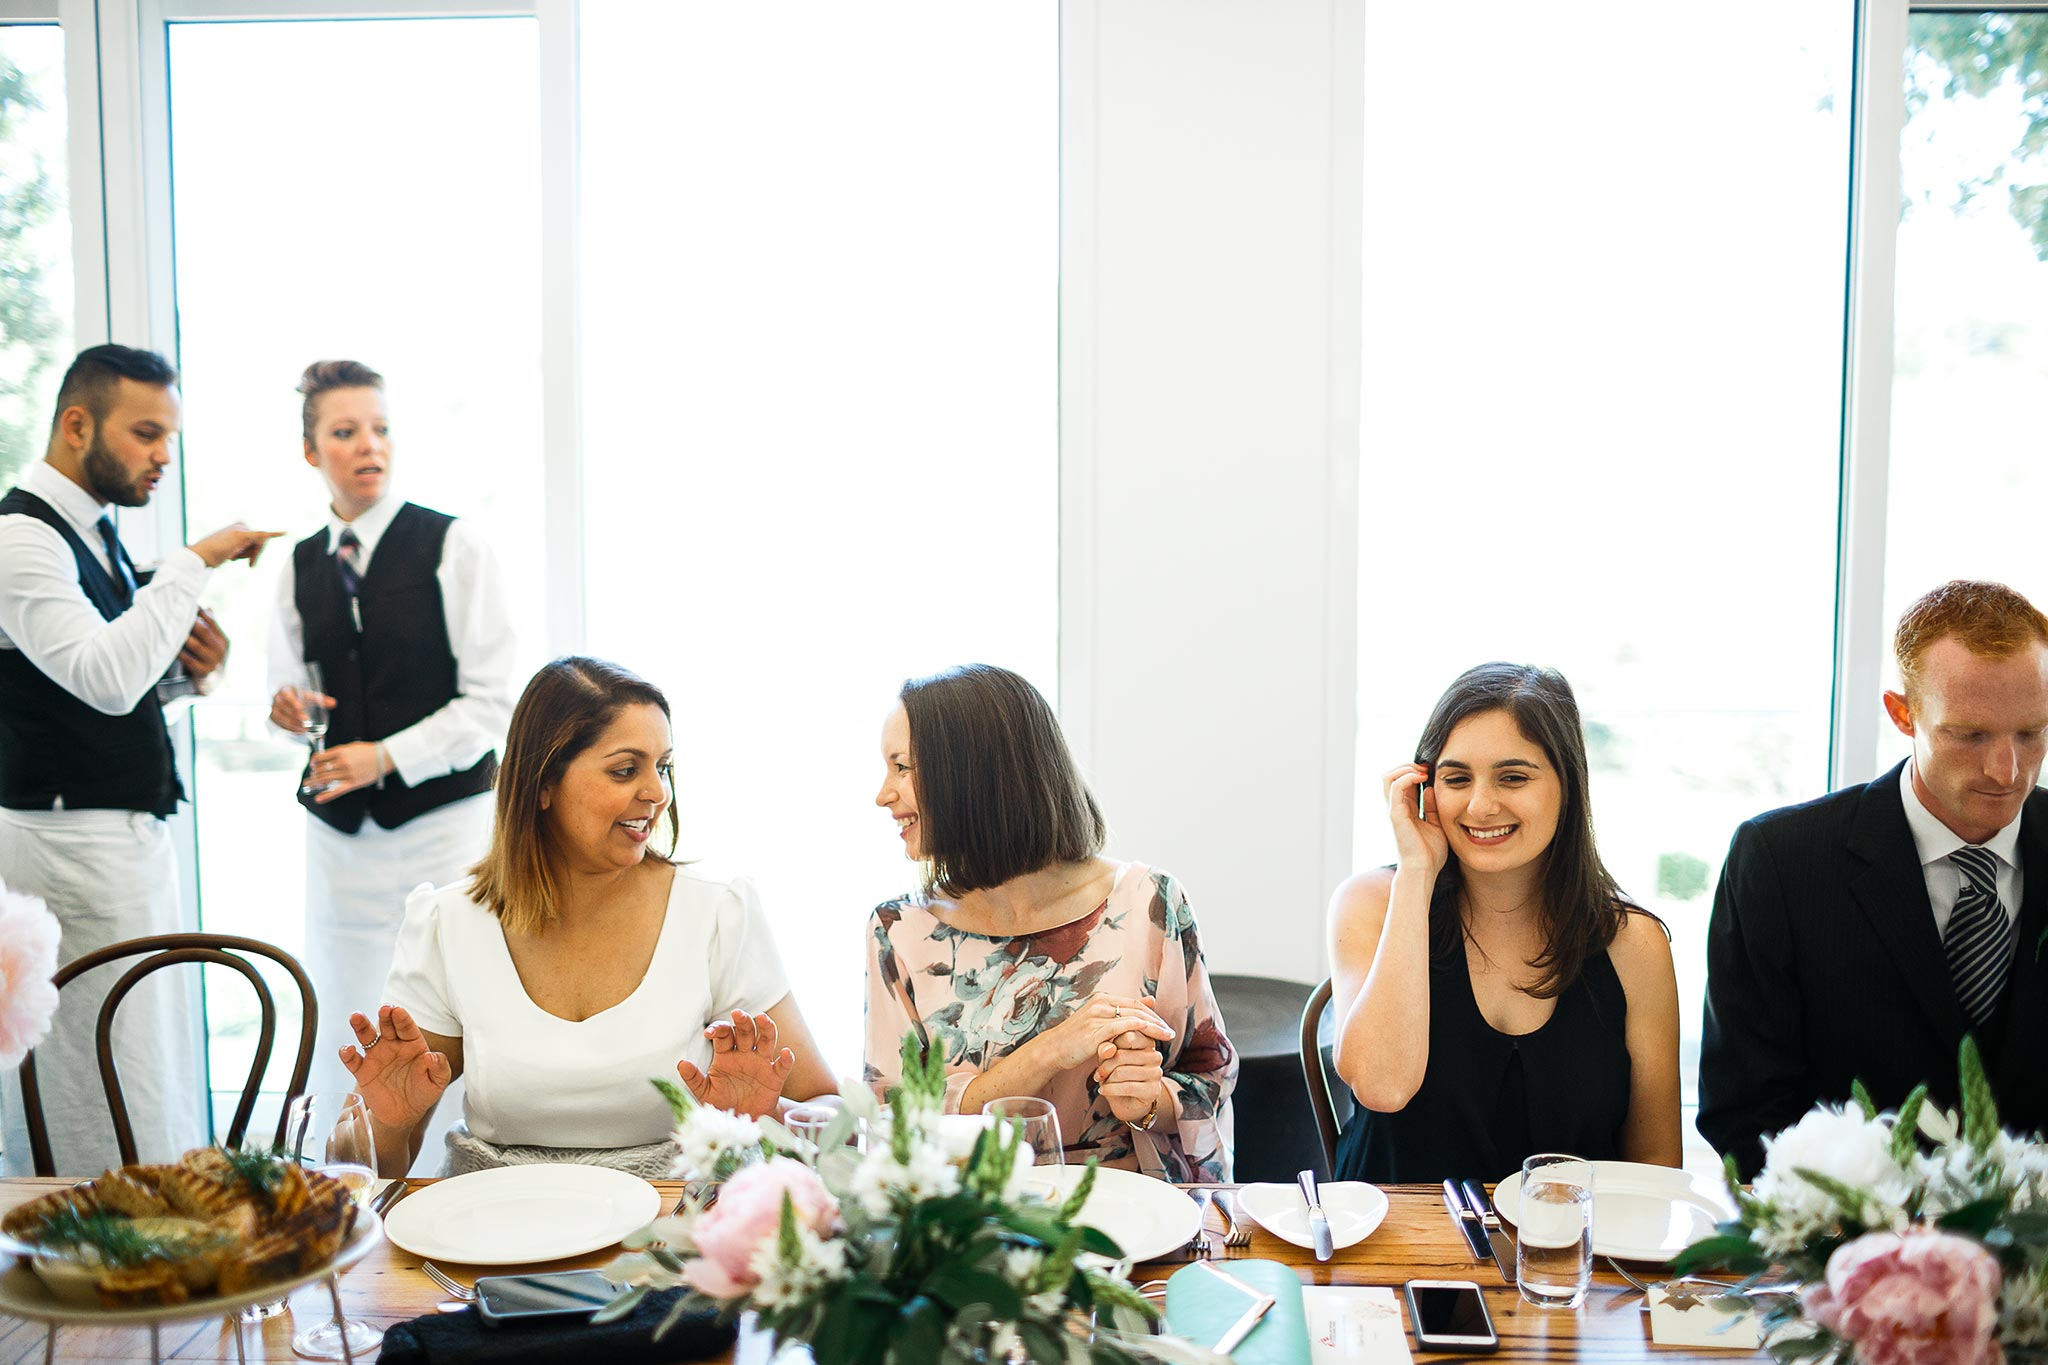 Daylesford-Lake-House-Wedding-Photography-lunch-reception-guests